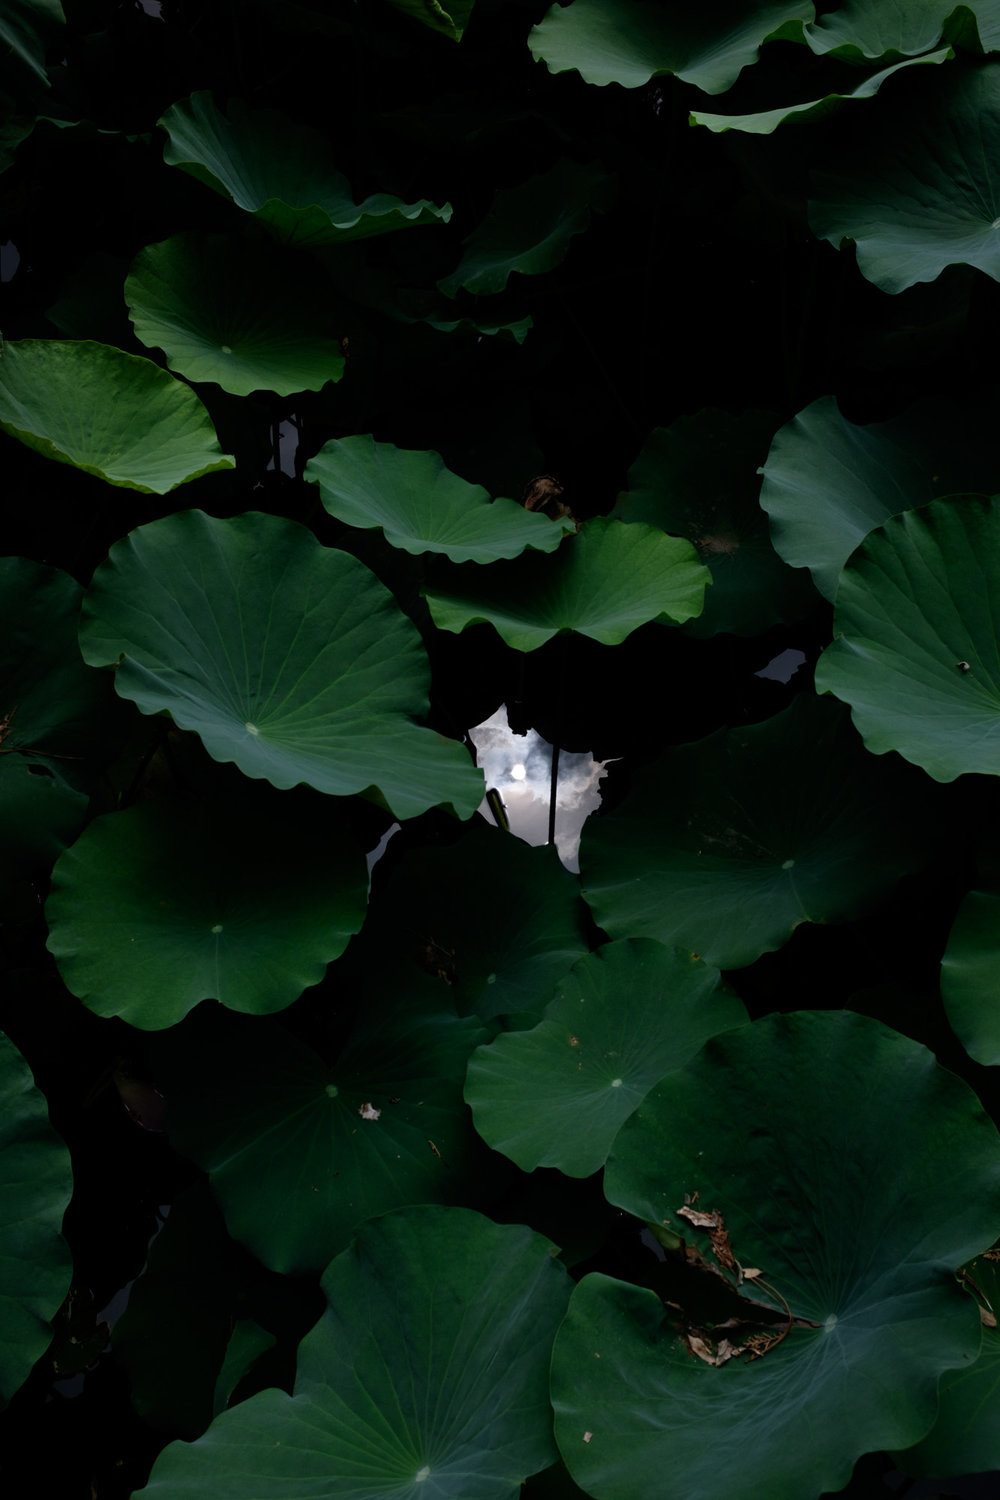 The sun reflected in a lily pond at the Summer Palace, Beijing, August 2017